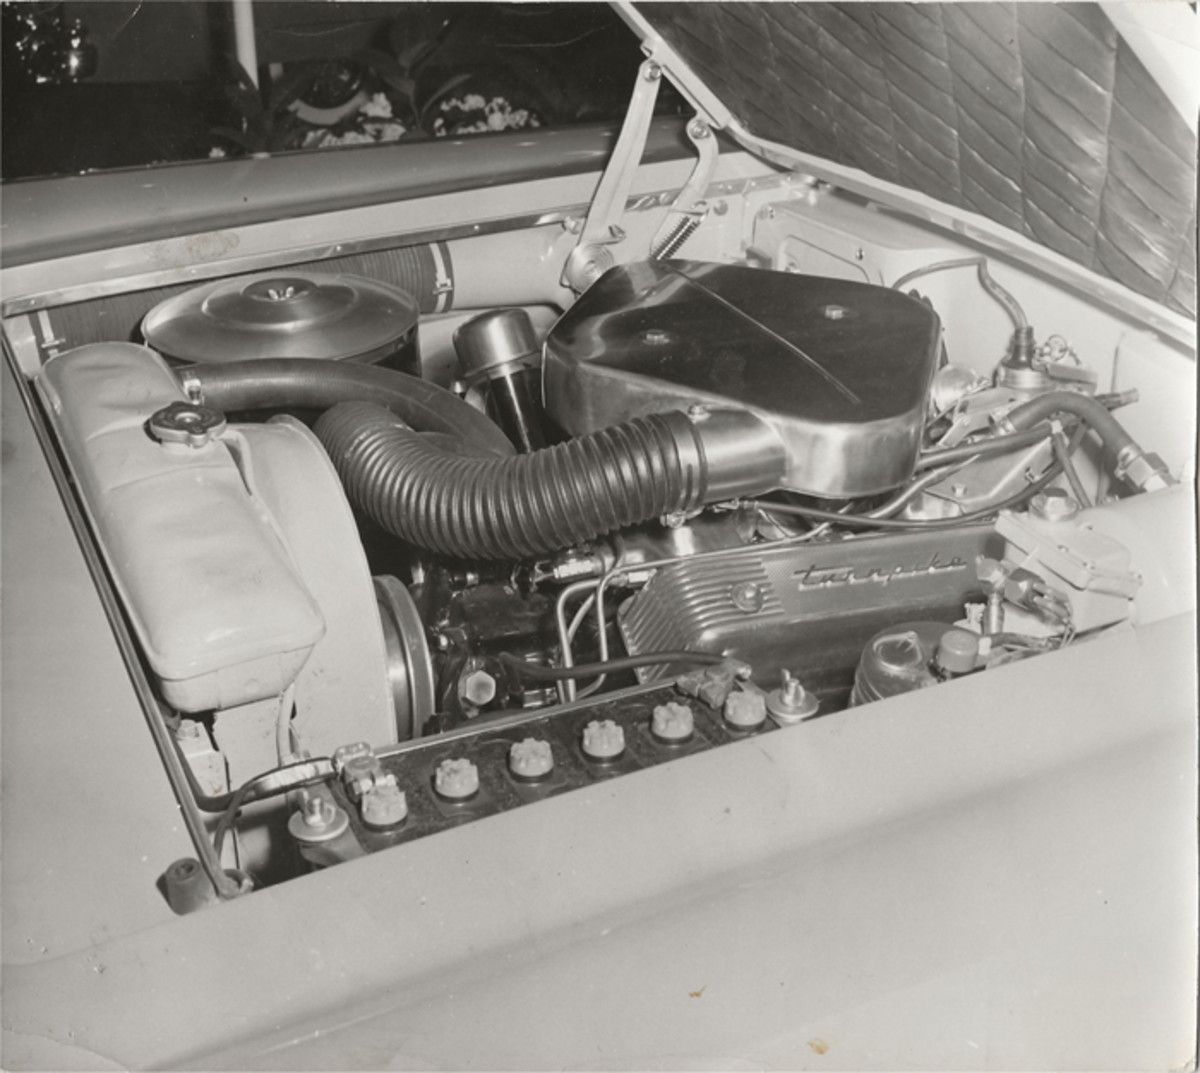 A period image of the original air cleaner and valve covers on the XM-Turnpike Cruiser's dual-carbureted engine. Some of these parts were gone when I bought the car.